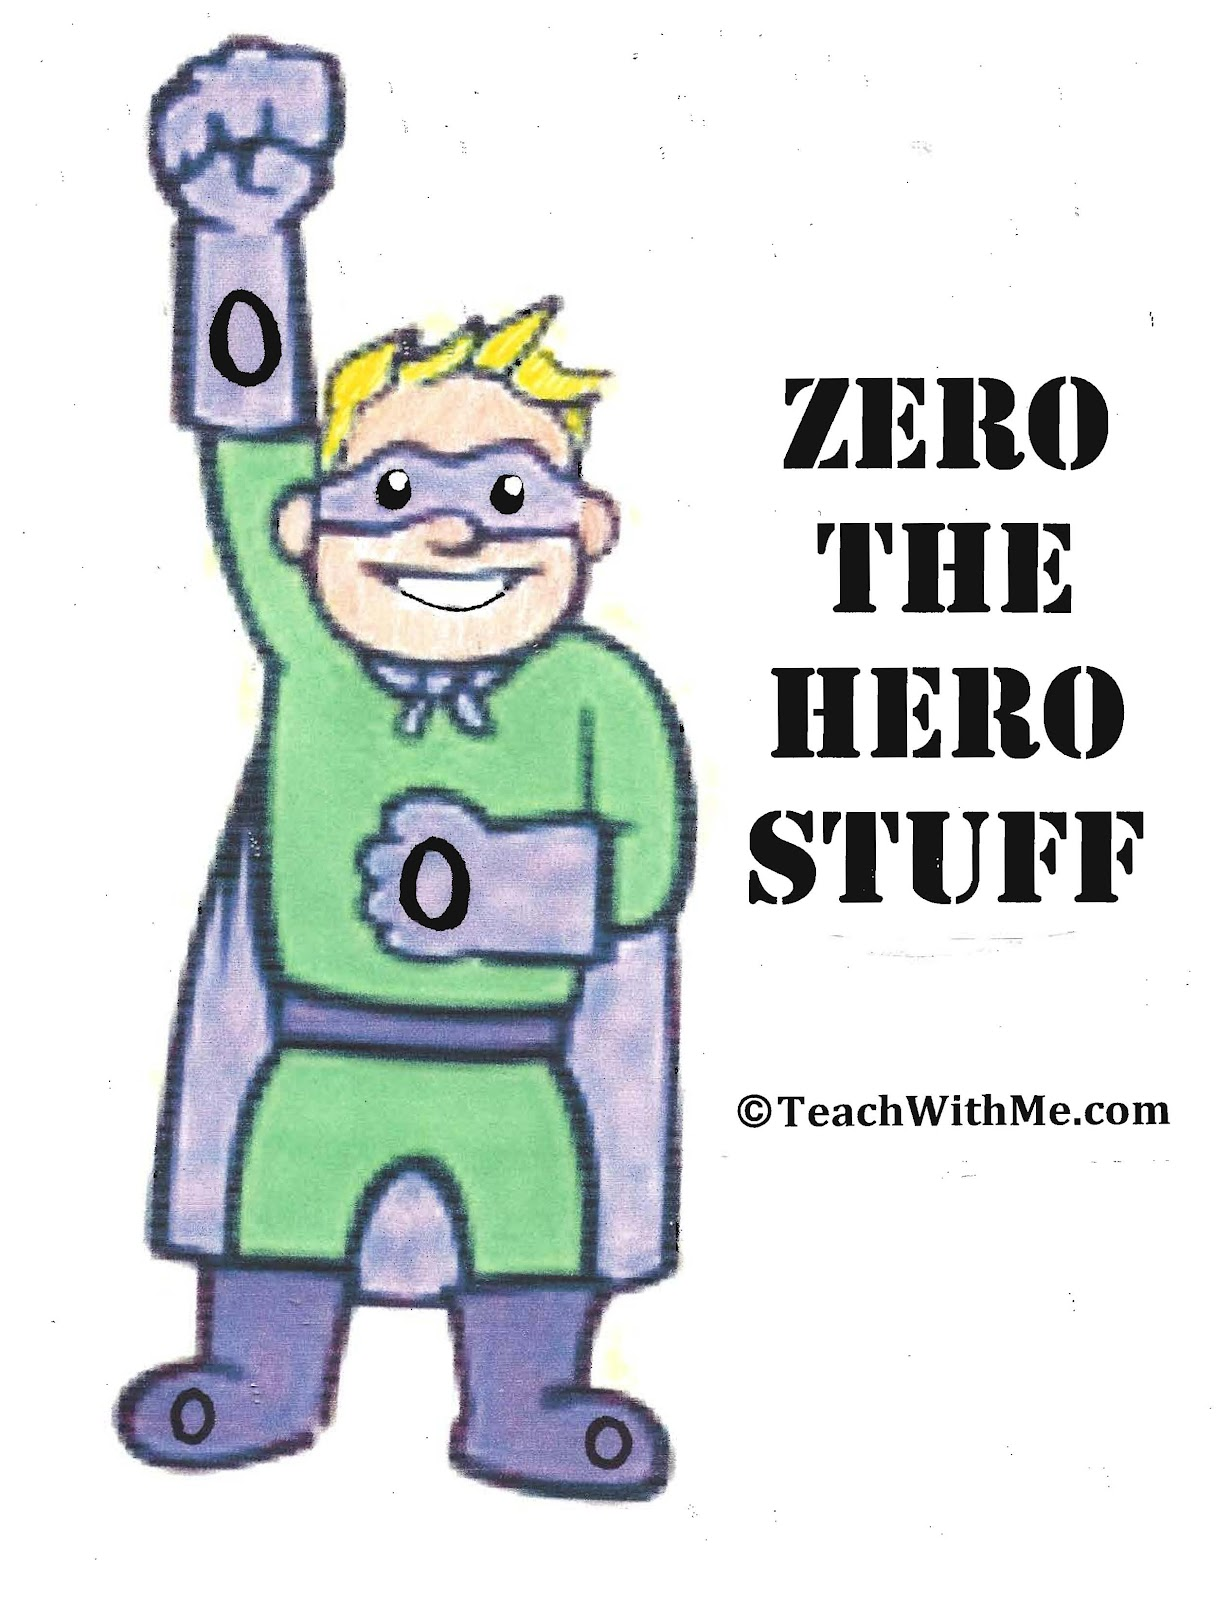 Counting Up To 100 Day With Zero The Hero